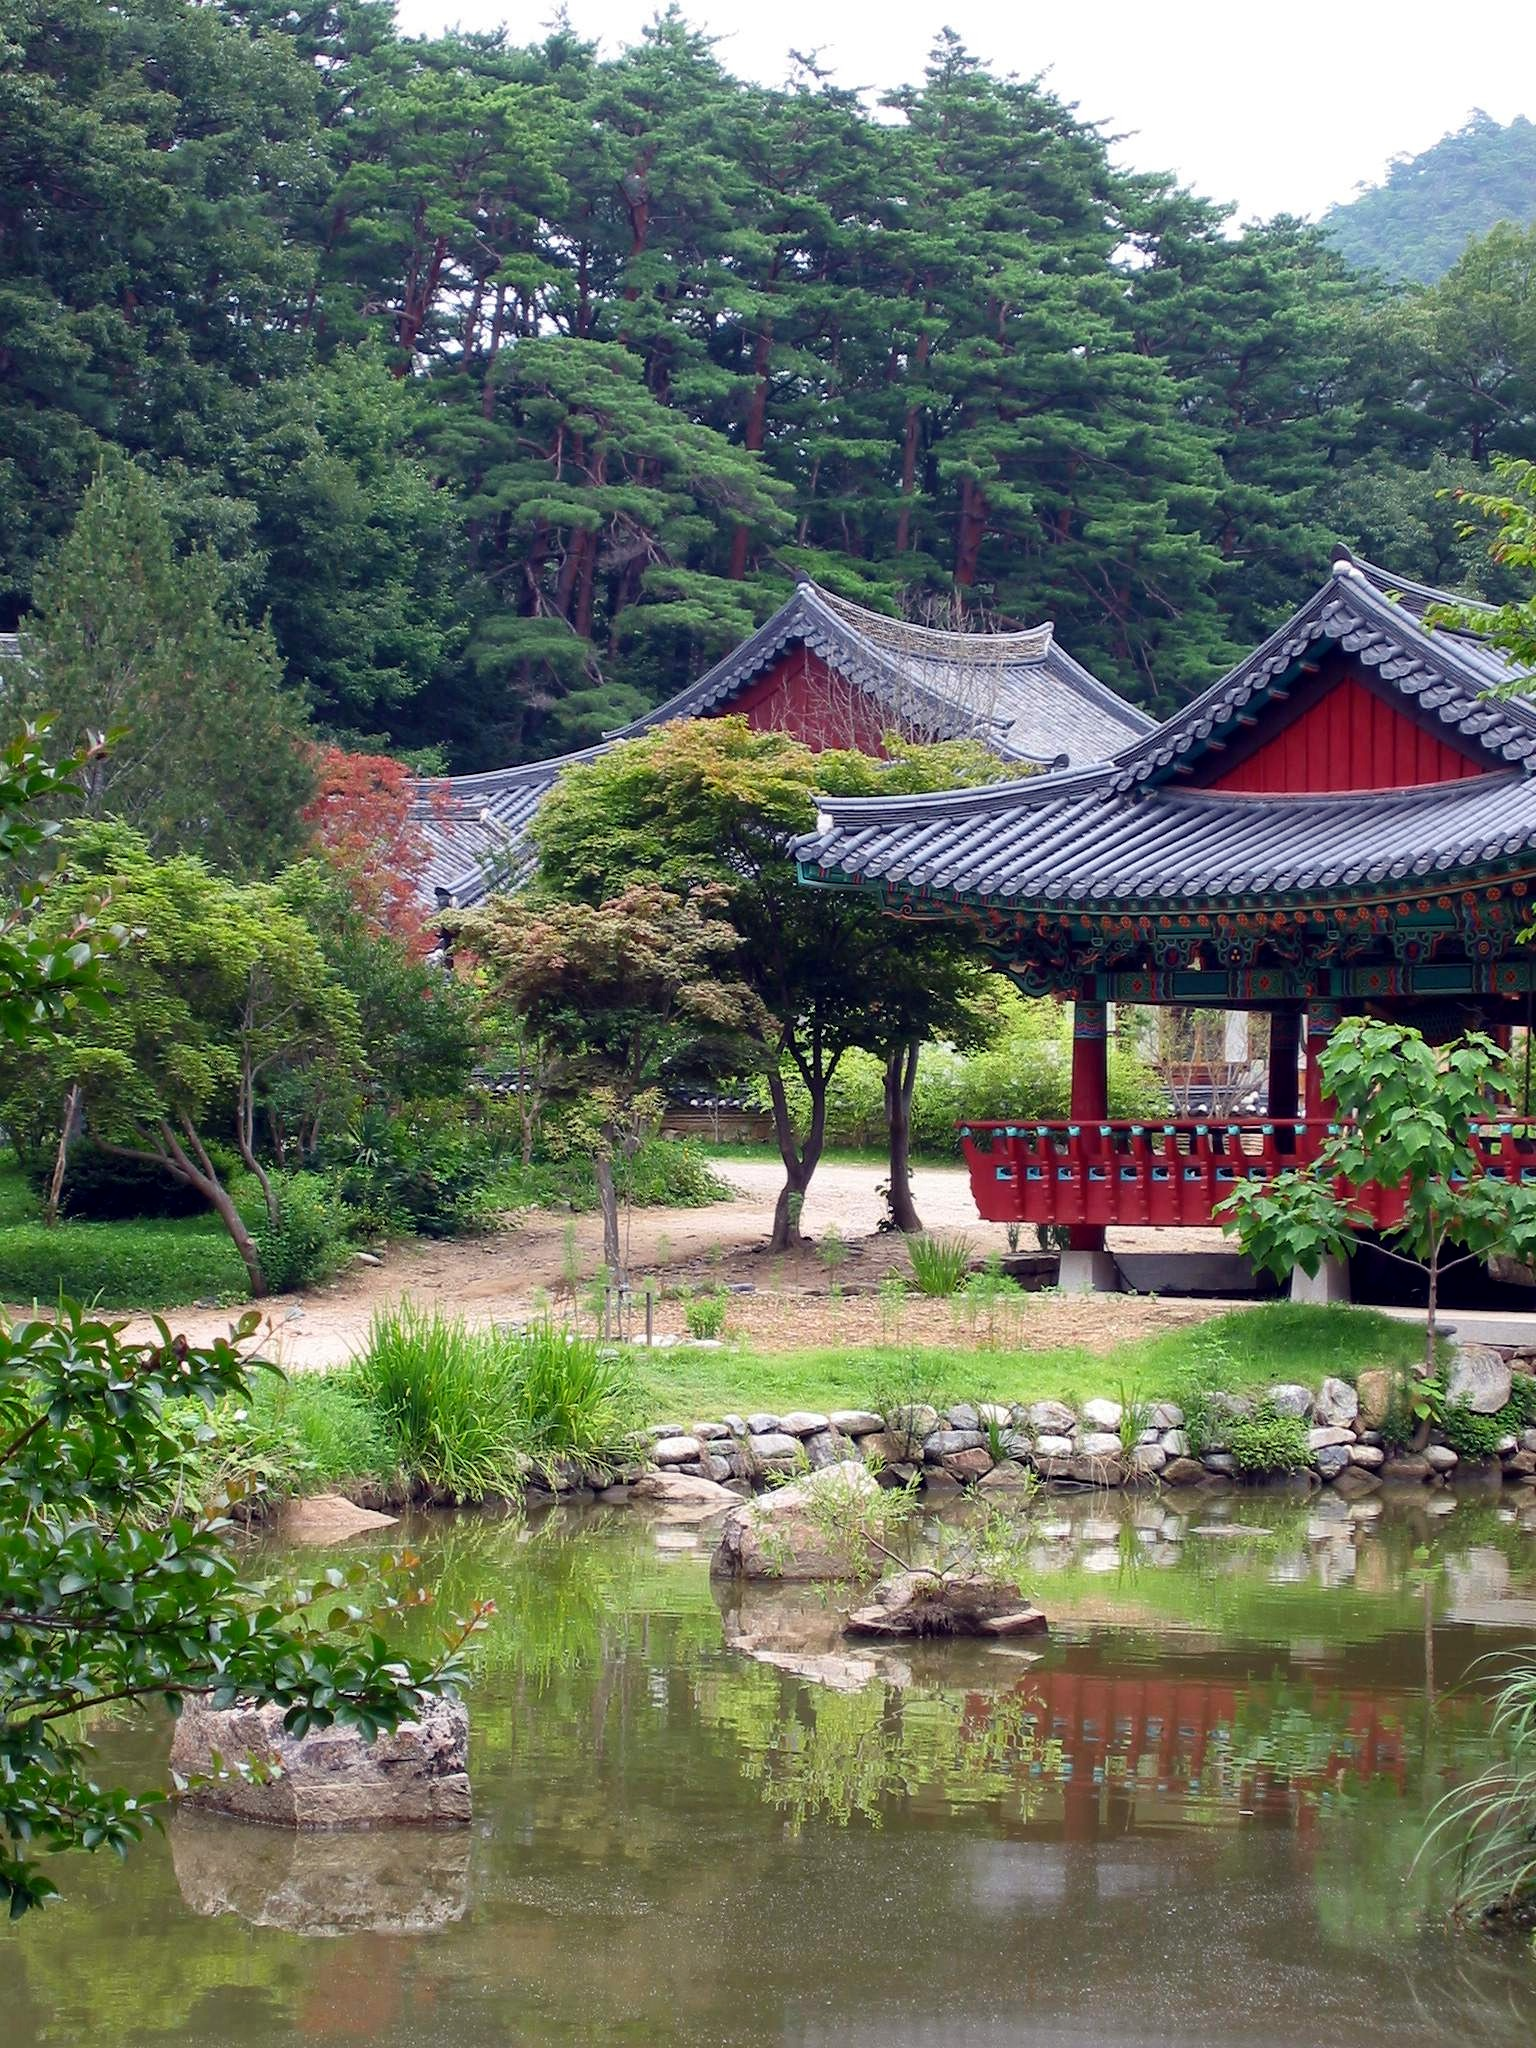 Korean Landscape Garden : File history usage on commons other wikis